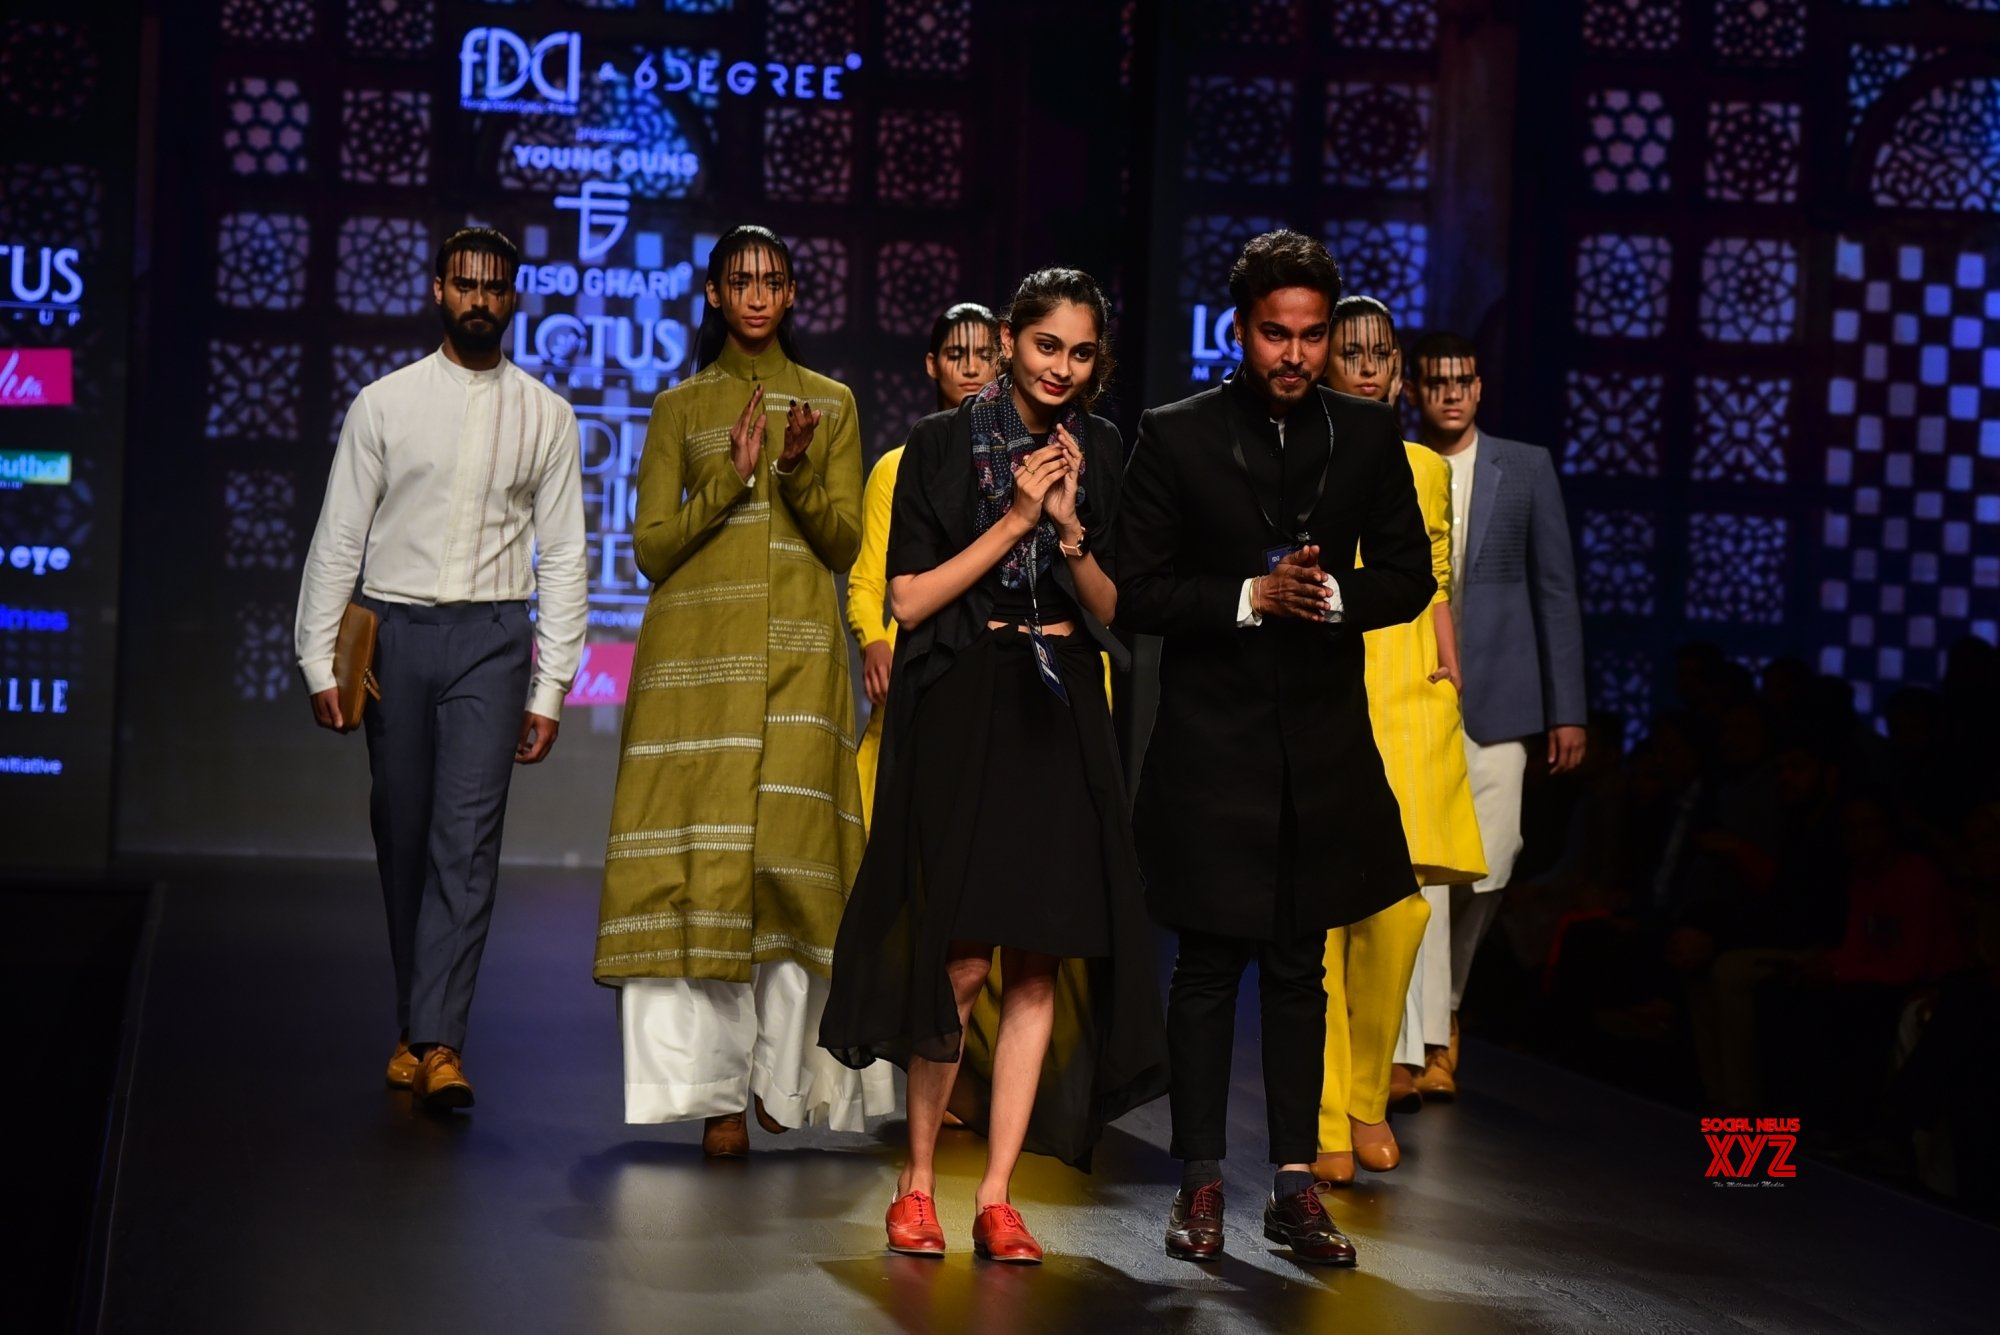 New Delhi: Lotus India Fashion Week - Day 4 - Tiso Ghari (Batch - 2) #Gallery